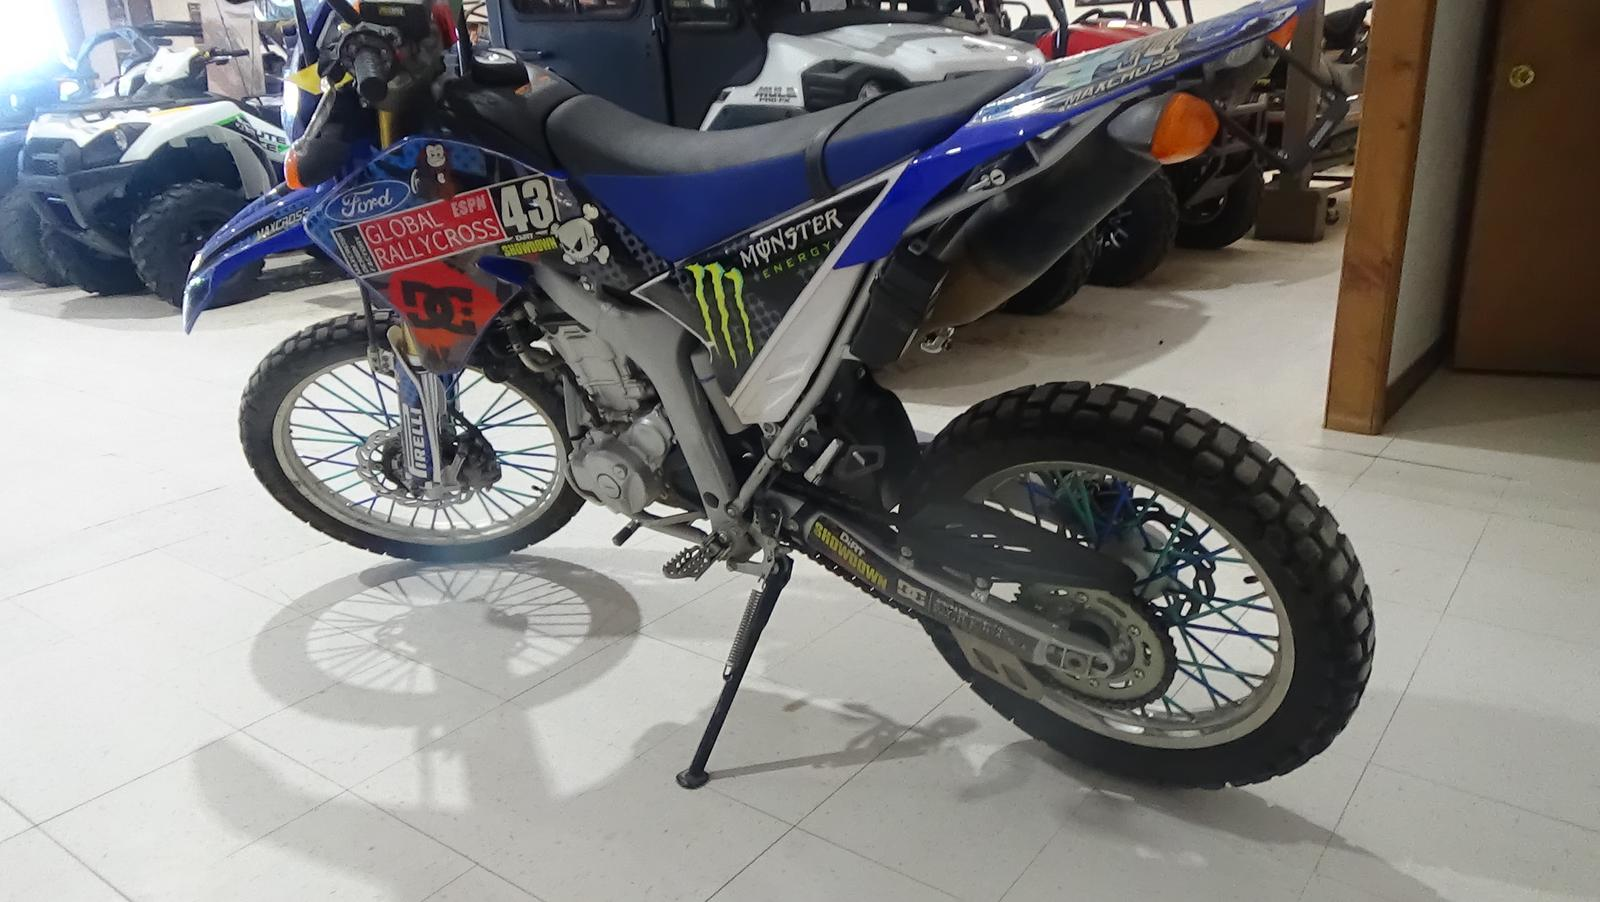 Power Commander Wr250r